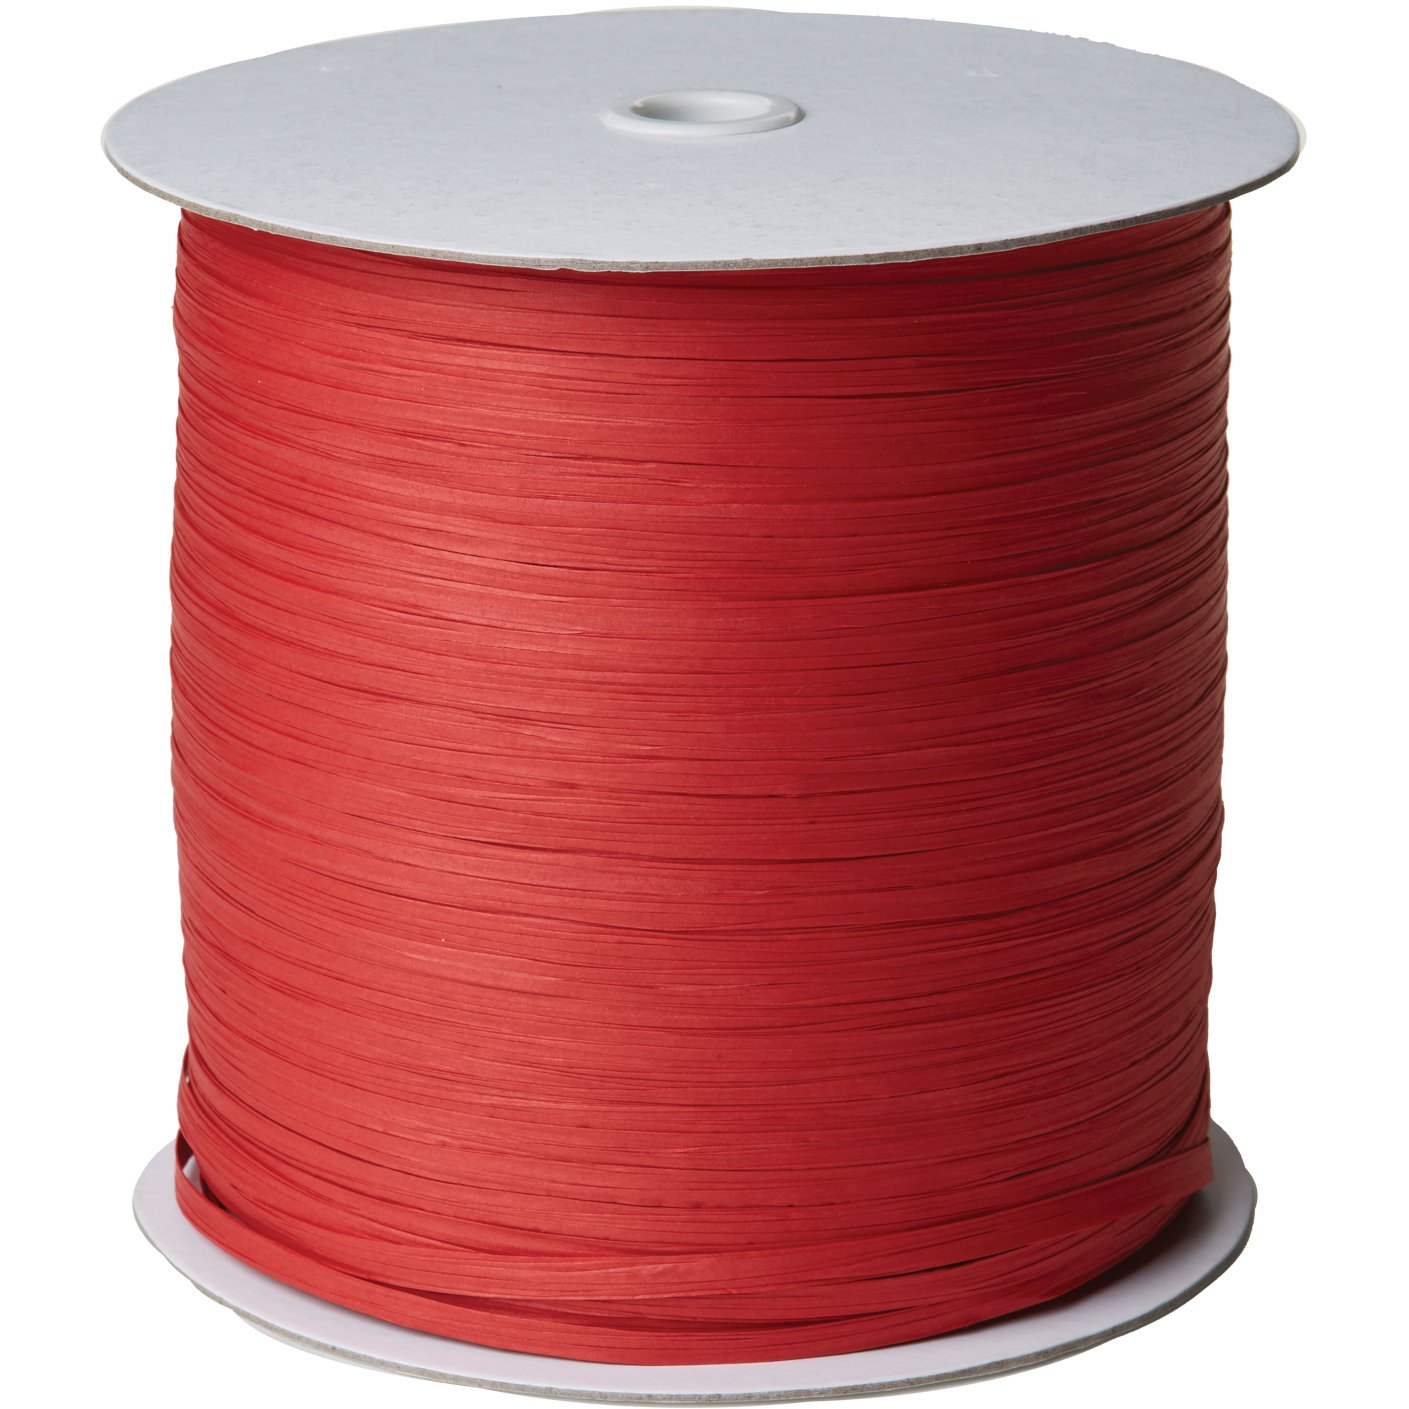 "Jillson & Roberts Paper Raffia Ribbon, 1/4"" Wide x 1000 Yards, Red"